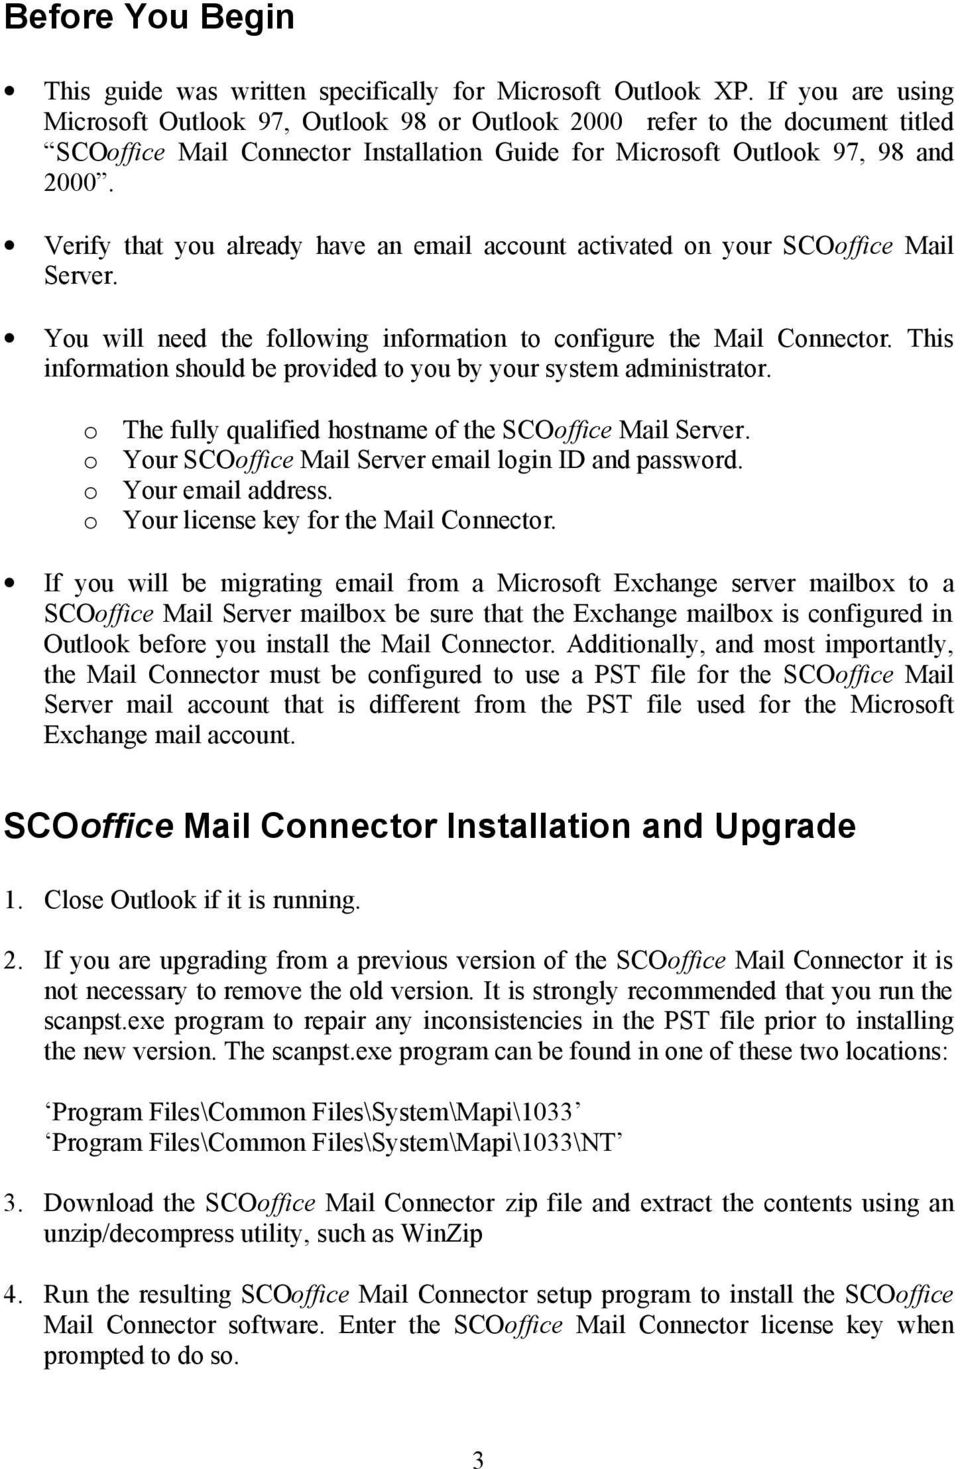 Verify that you already have an email account activated on your SCOoffice Mail Server. You will need the following information to configure the Mail Connector.